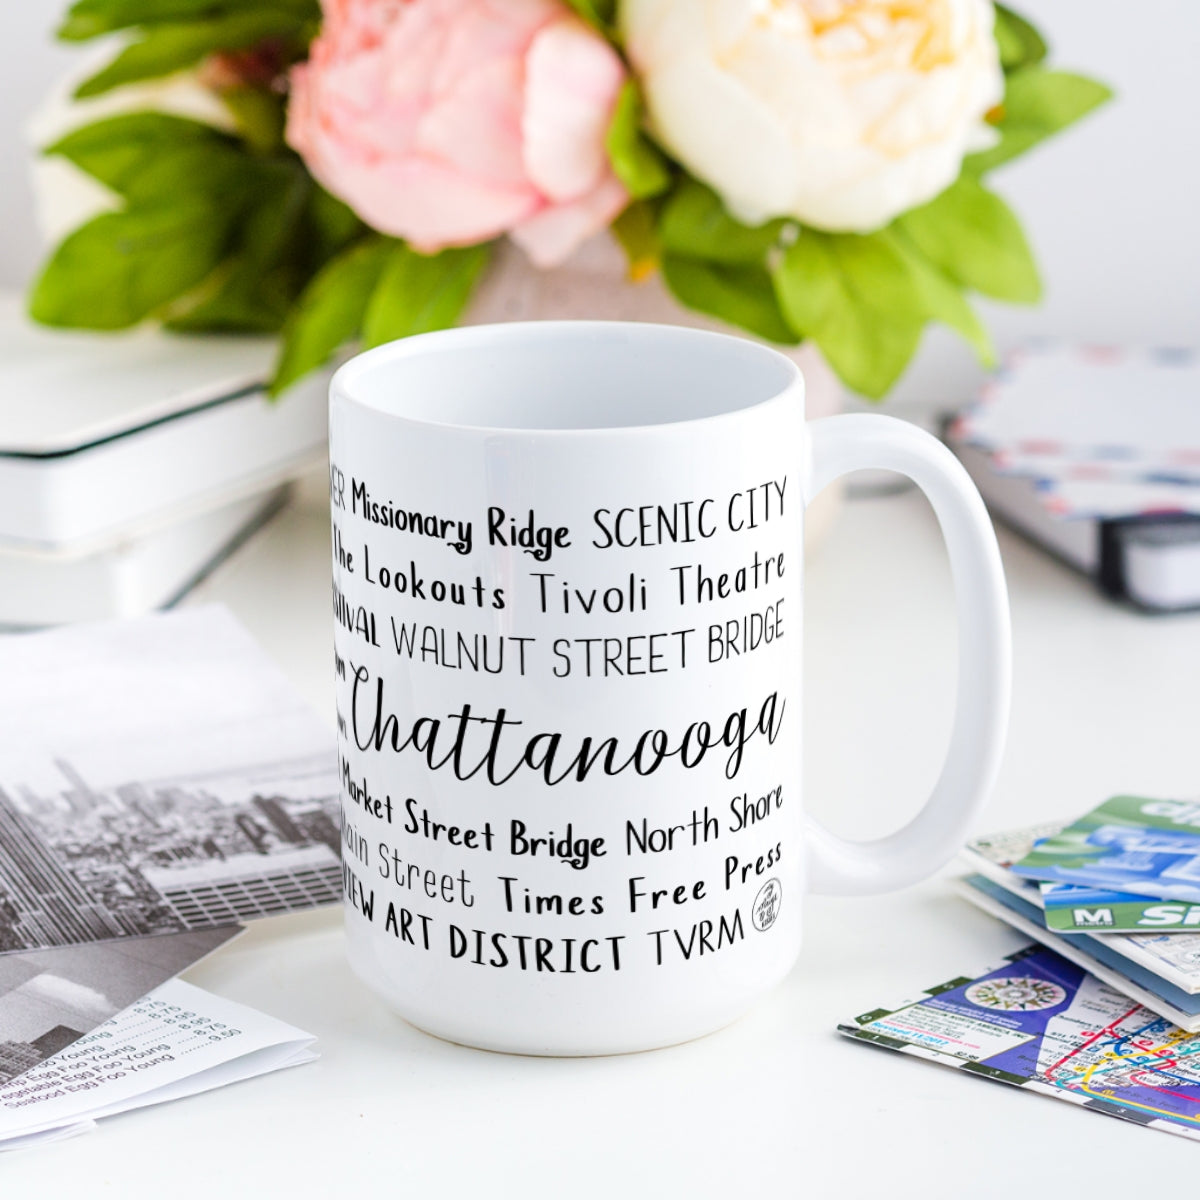 Chattanooga, TN Mug